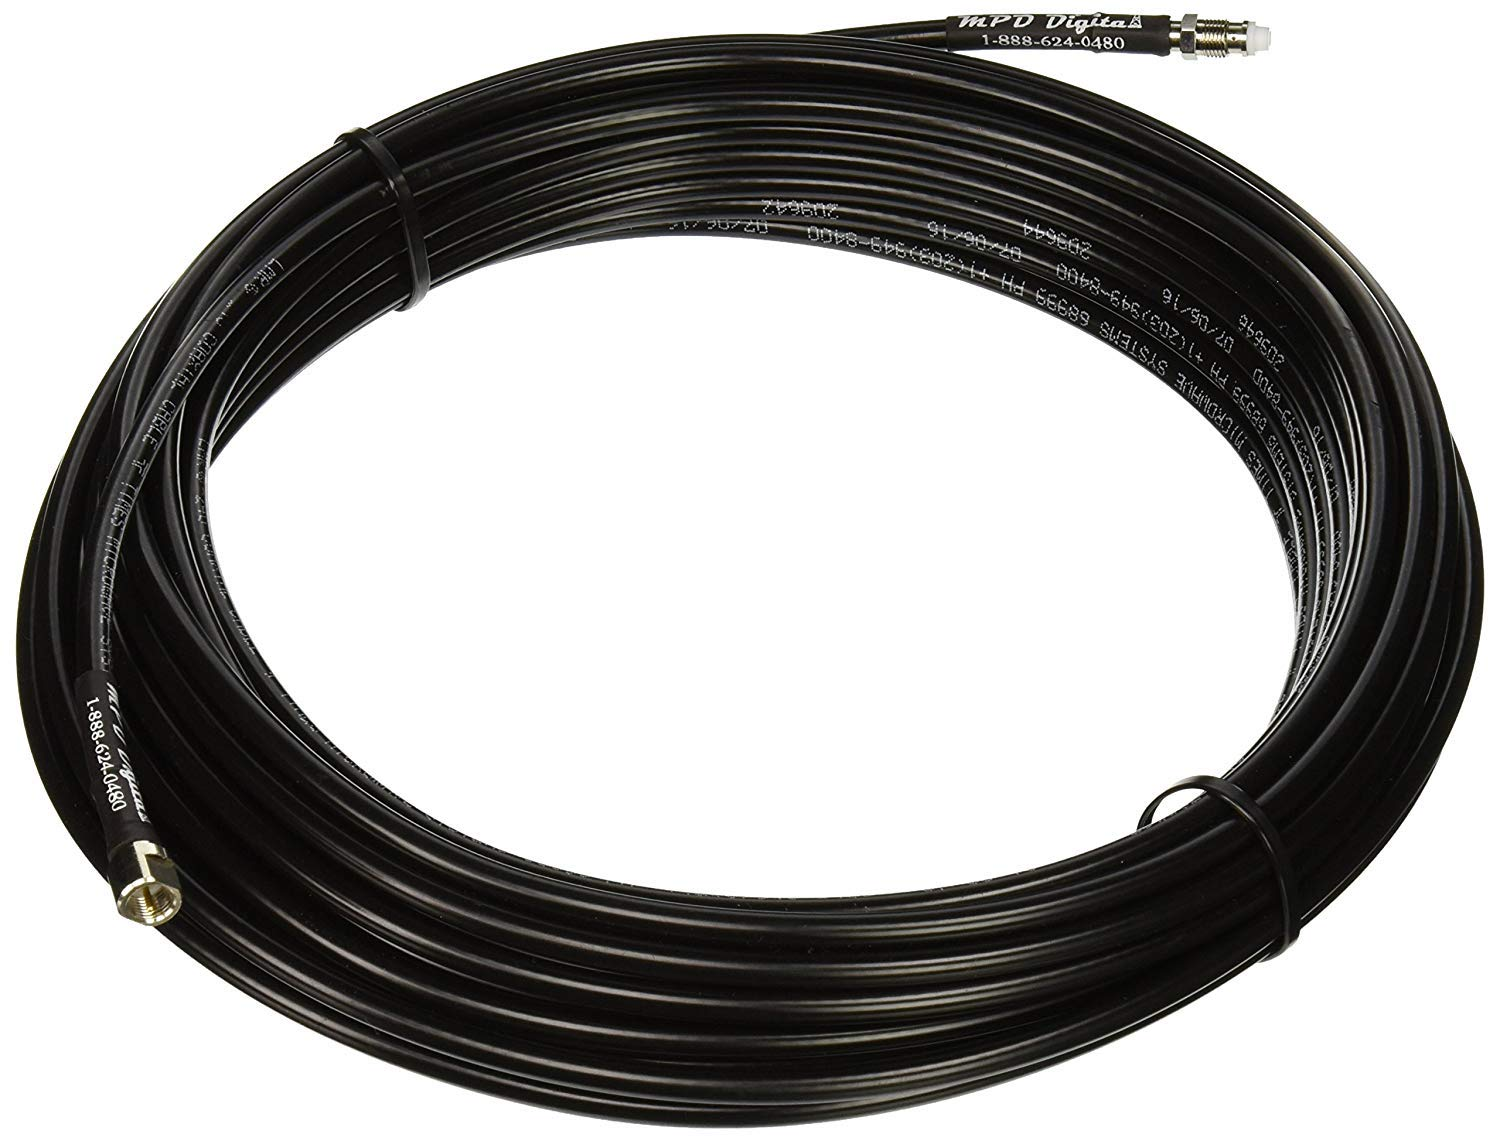 MPD Digital LMR240-cell-phone-extension-50 Cellular Antenna Extension Cable for Cell Phone Antennas FMA Male to FME Female LMR-240 - with Polyolefin Cross-Linked Strain Relief by MPD Digital